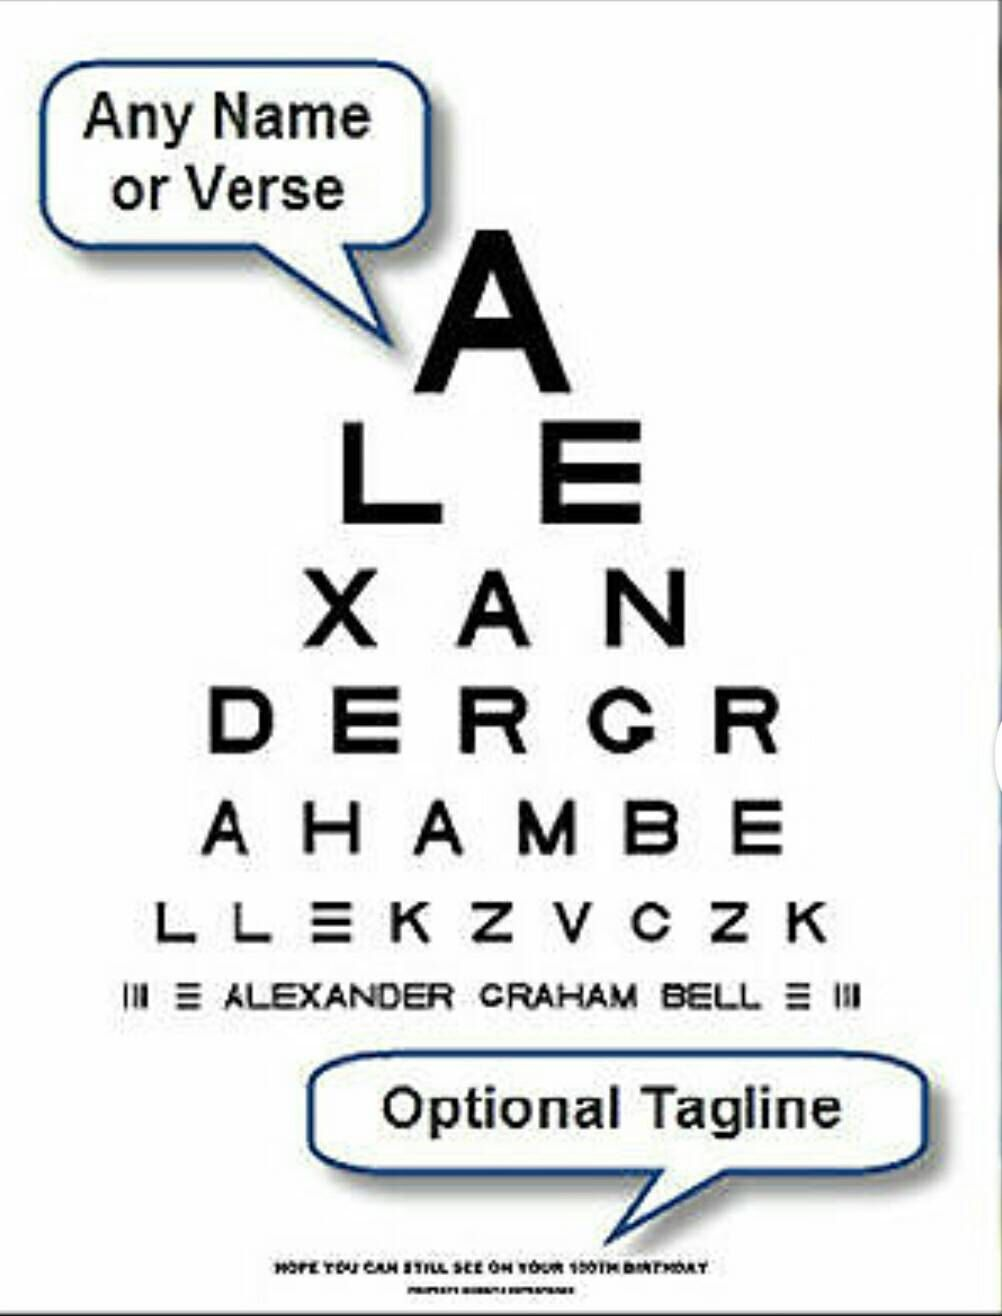 Personalized Snellen Eye Chart Print  You Pick The Words Up To